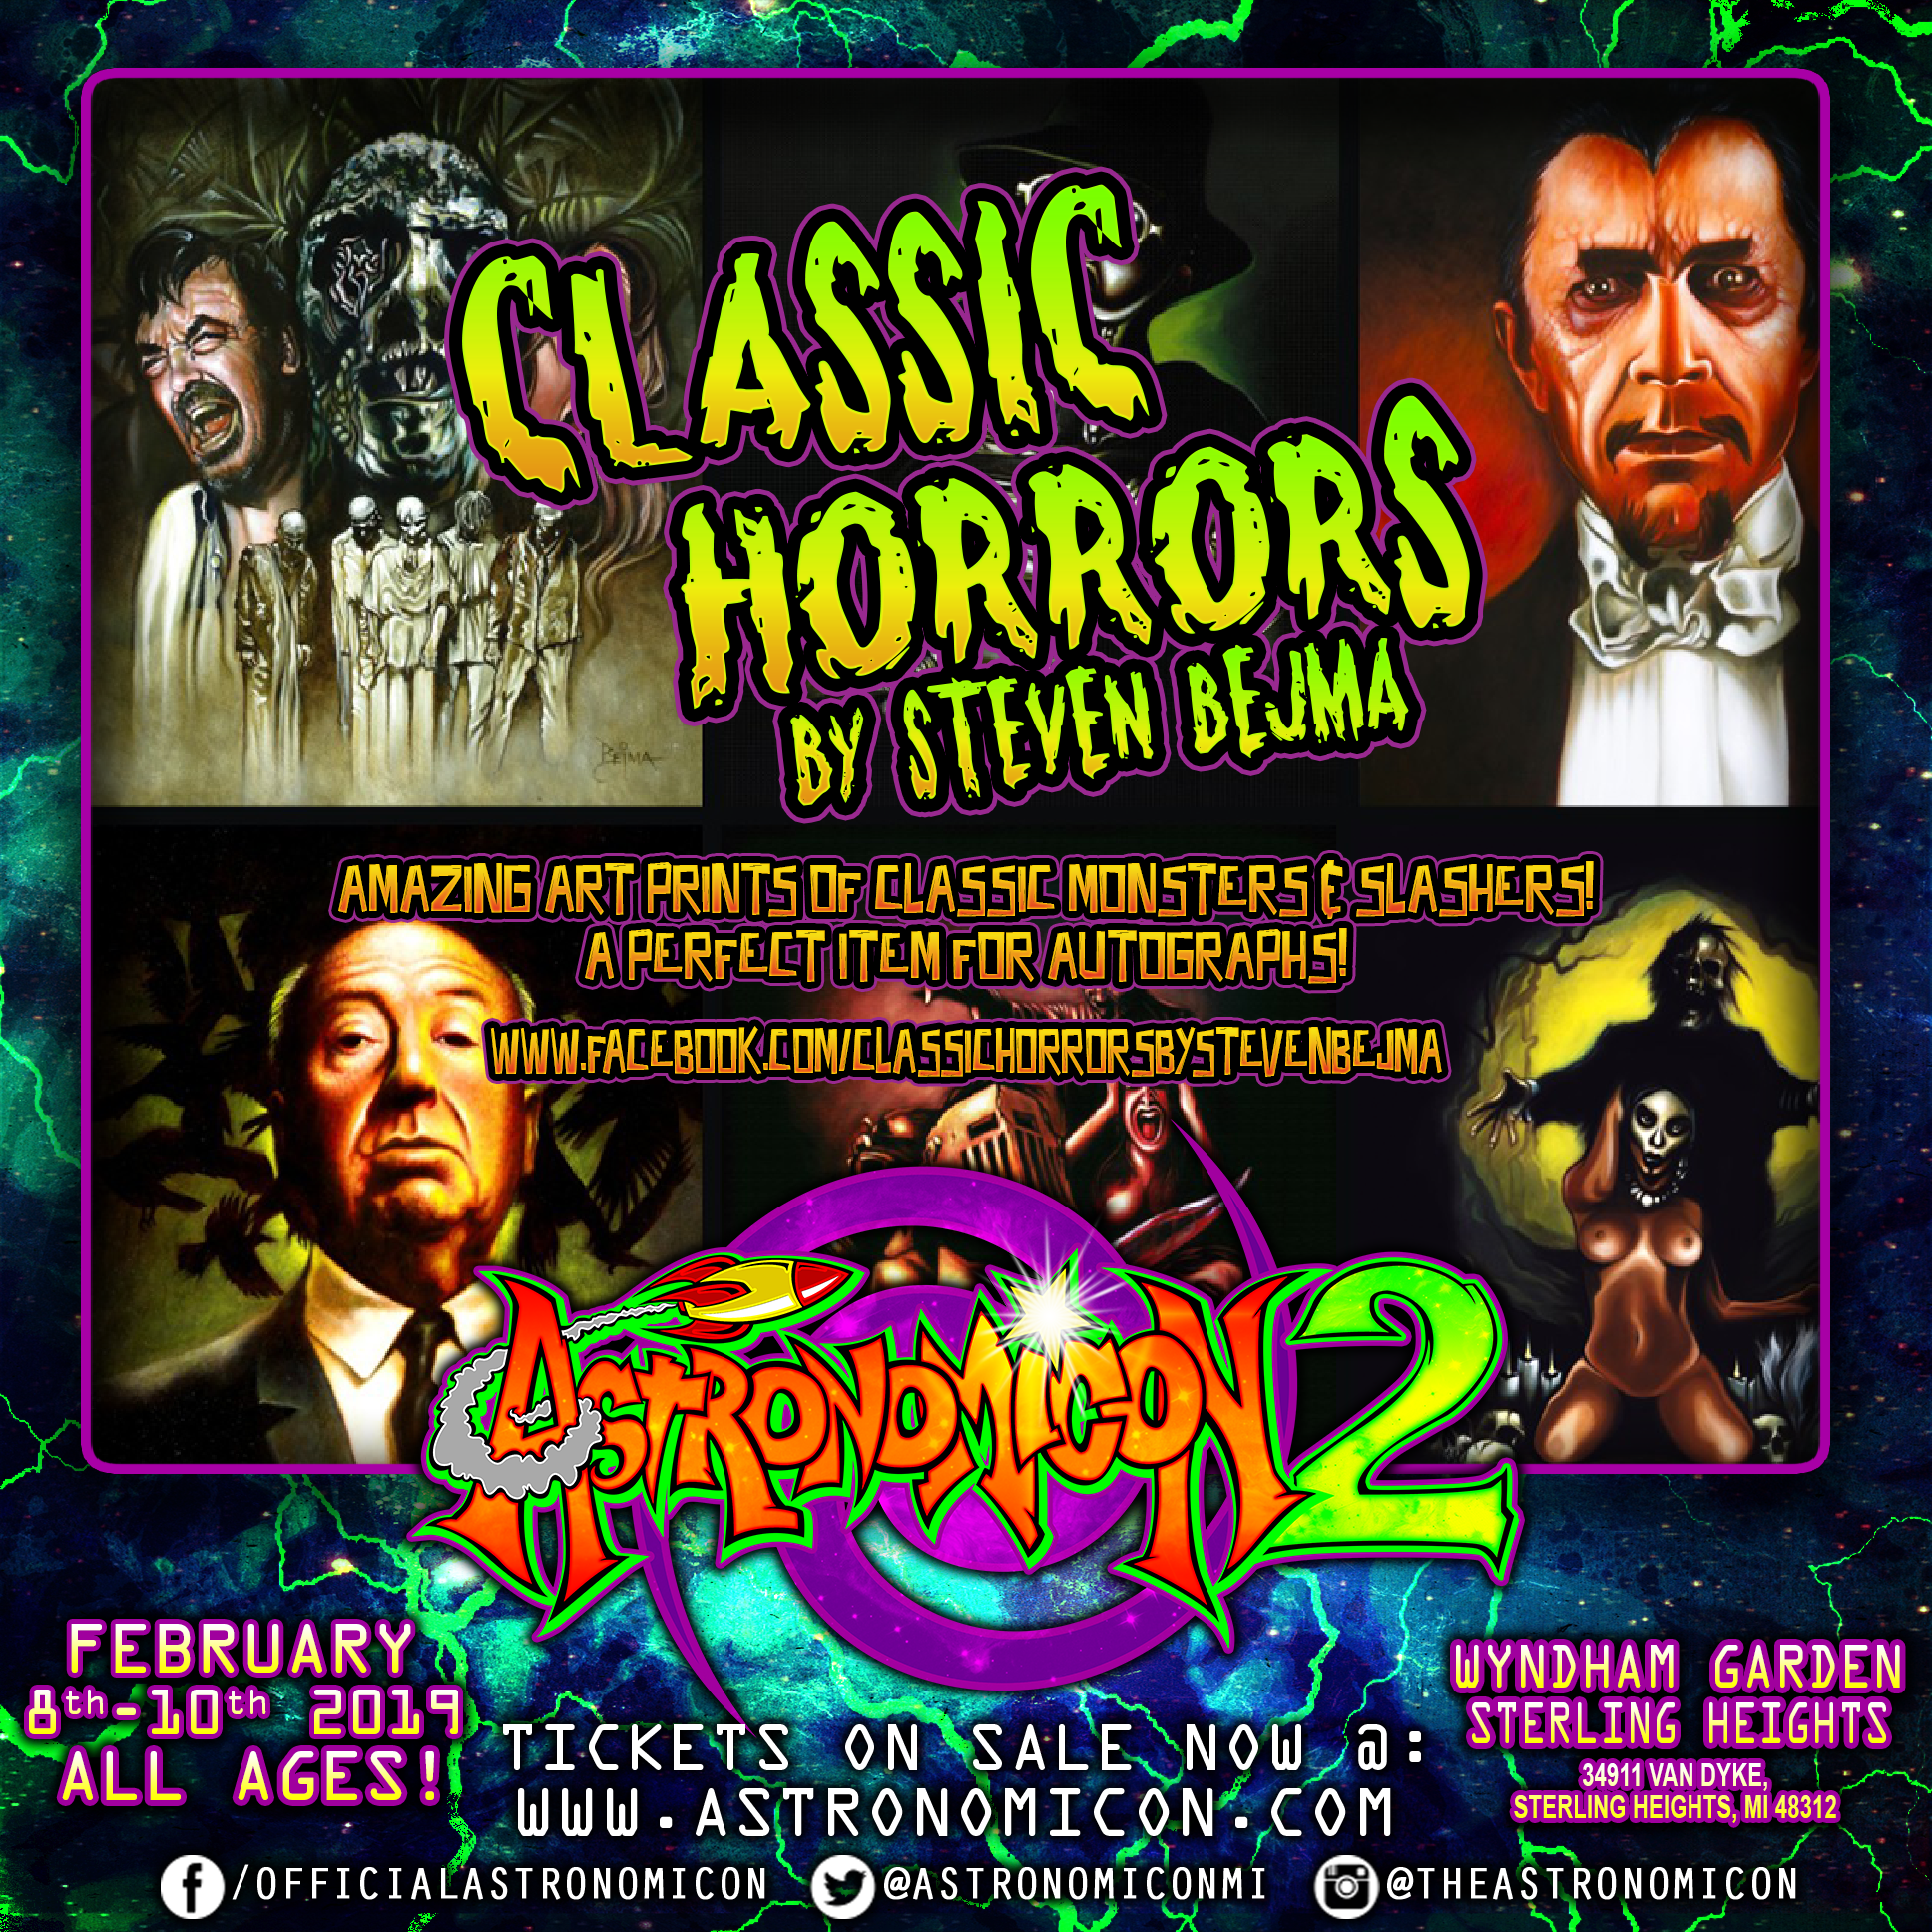 Astronomicon 2 Classic Horrors IG Ad.png